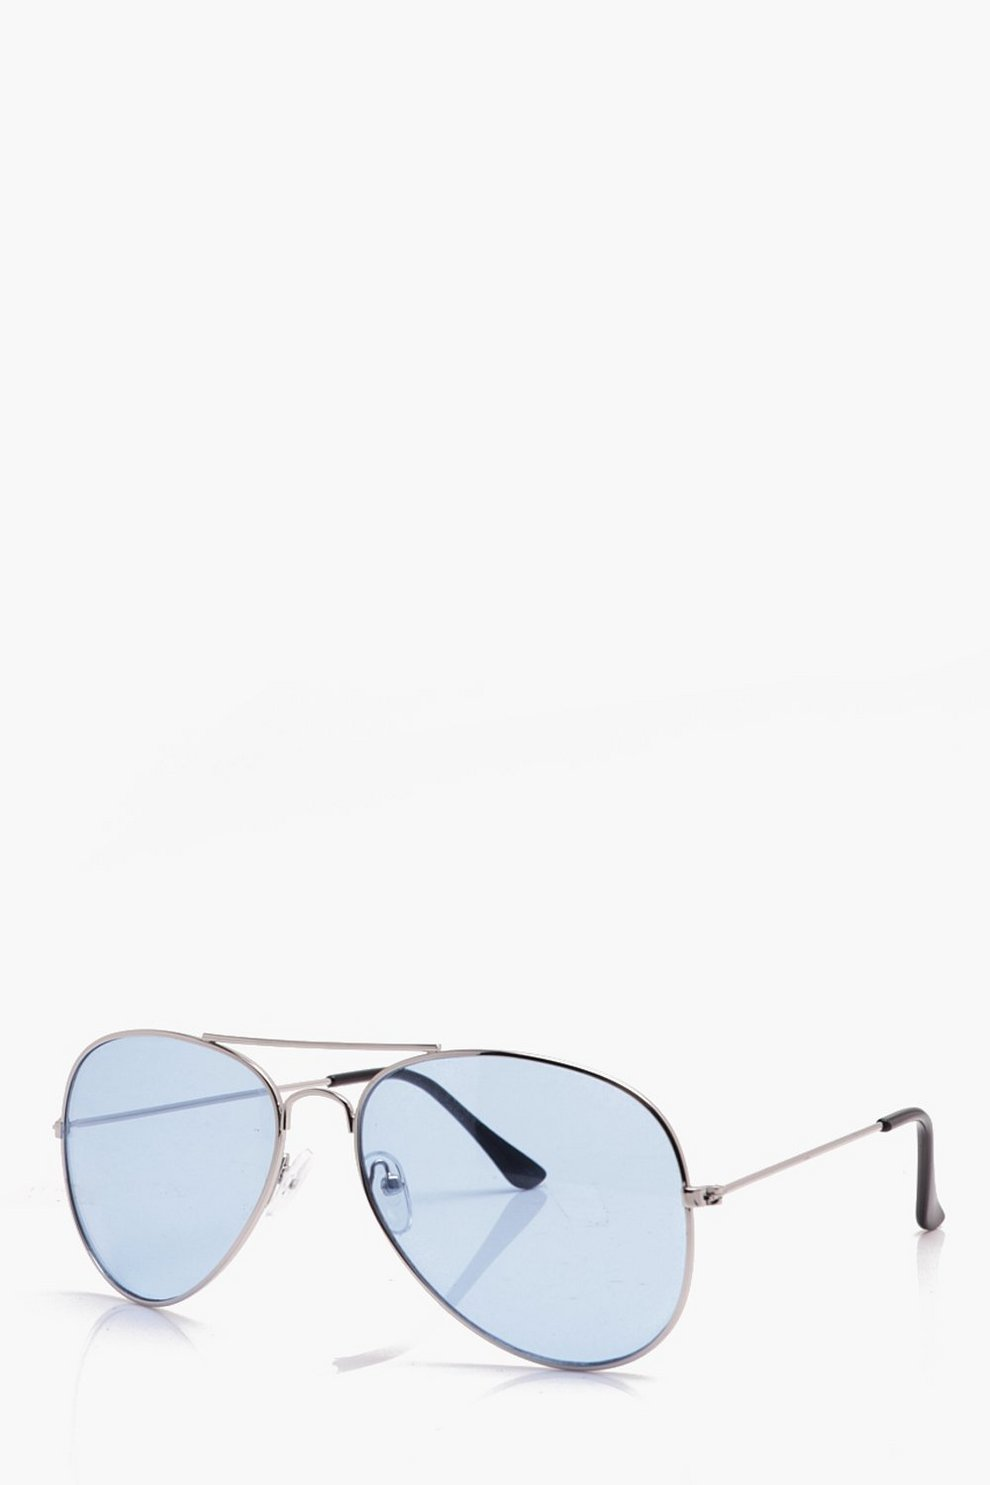 09ed685a2 Mens Silver Classic Aviator Sunglasses With Blue Lens. Hover to zoom